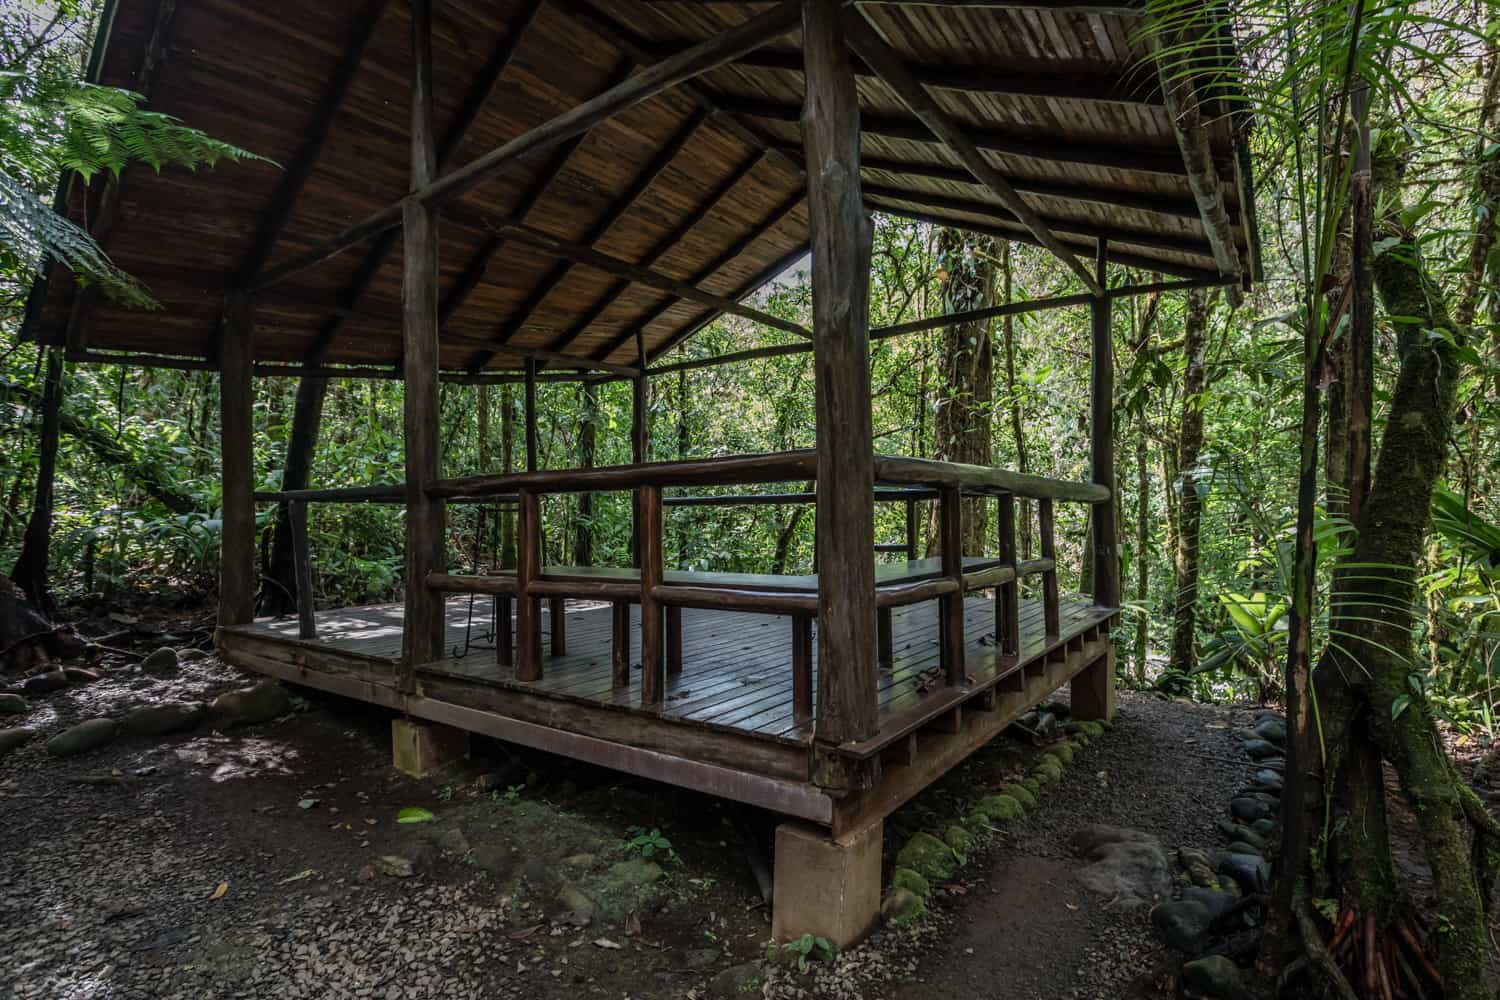 Site at Rio Celeste Hideaway Hotel for private wedding by river.